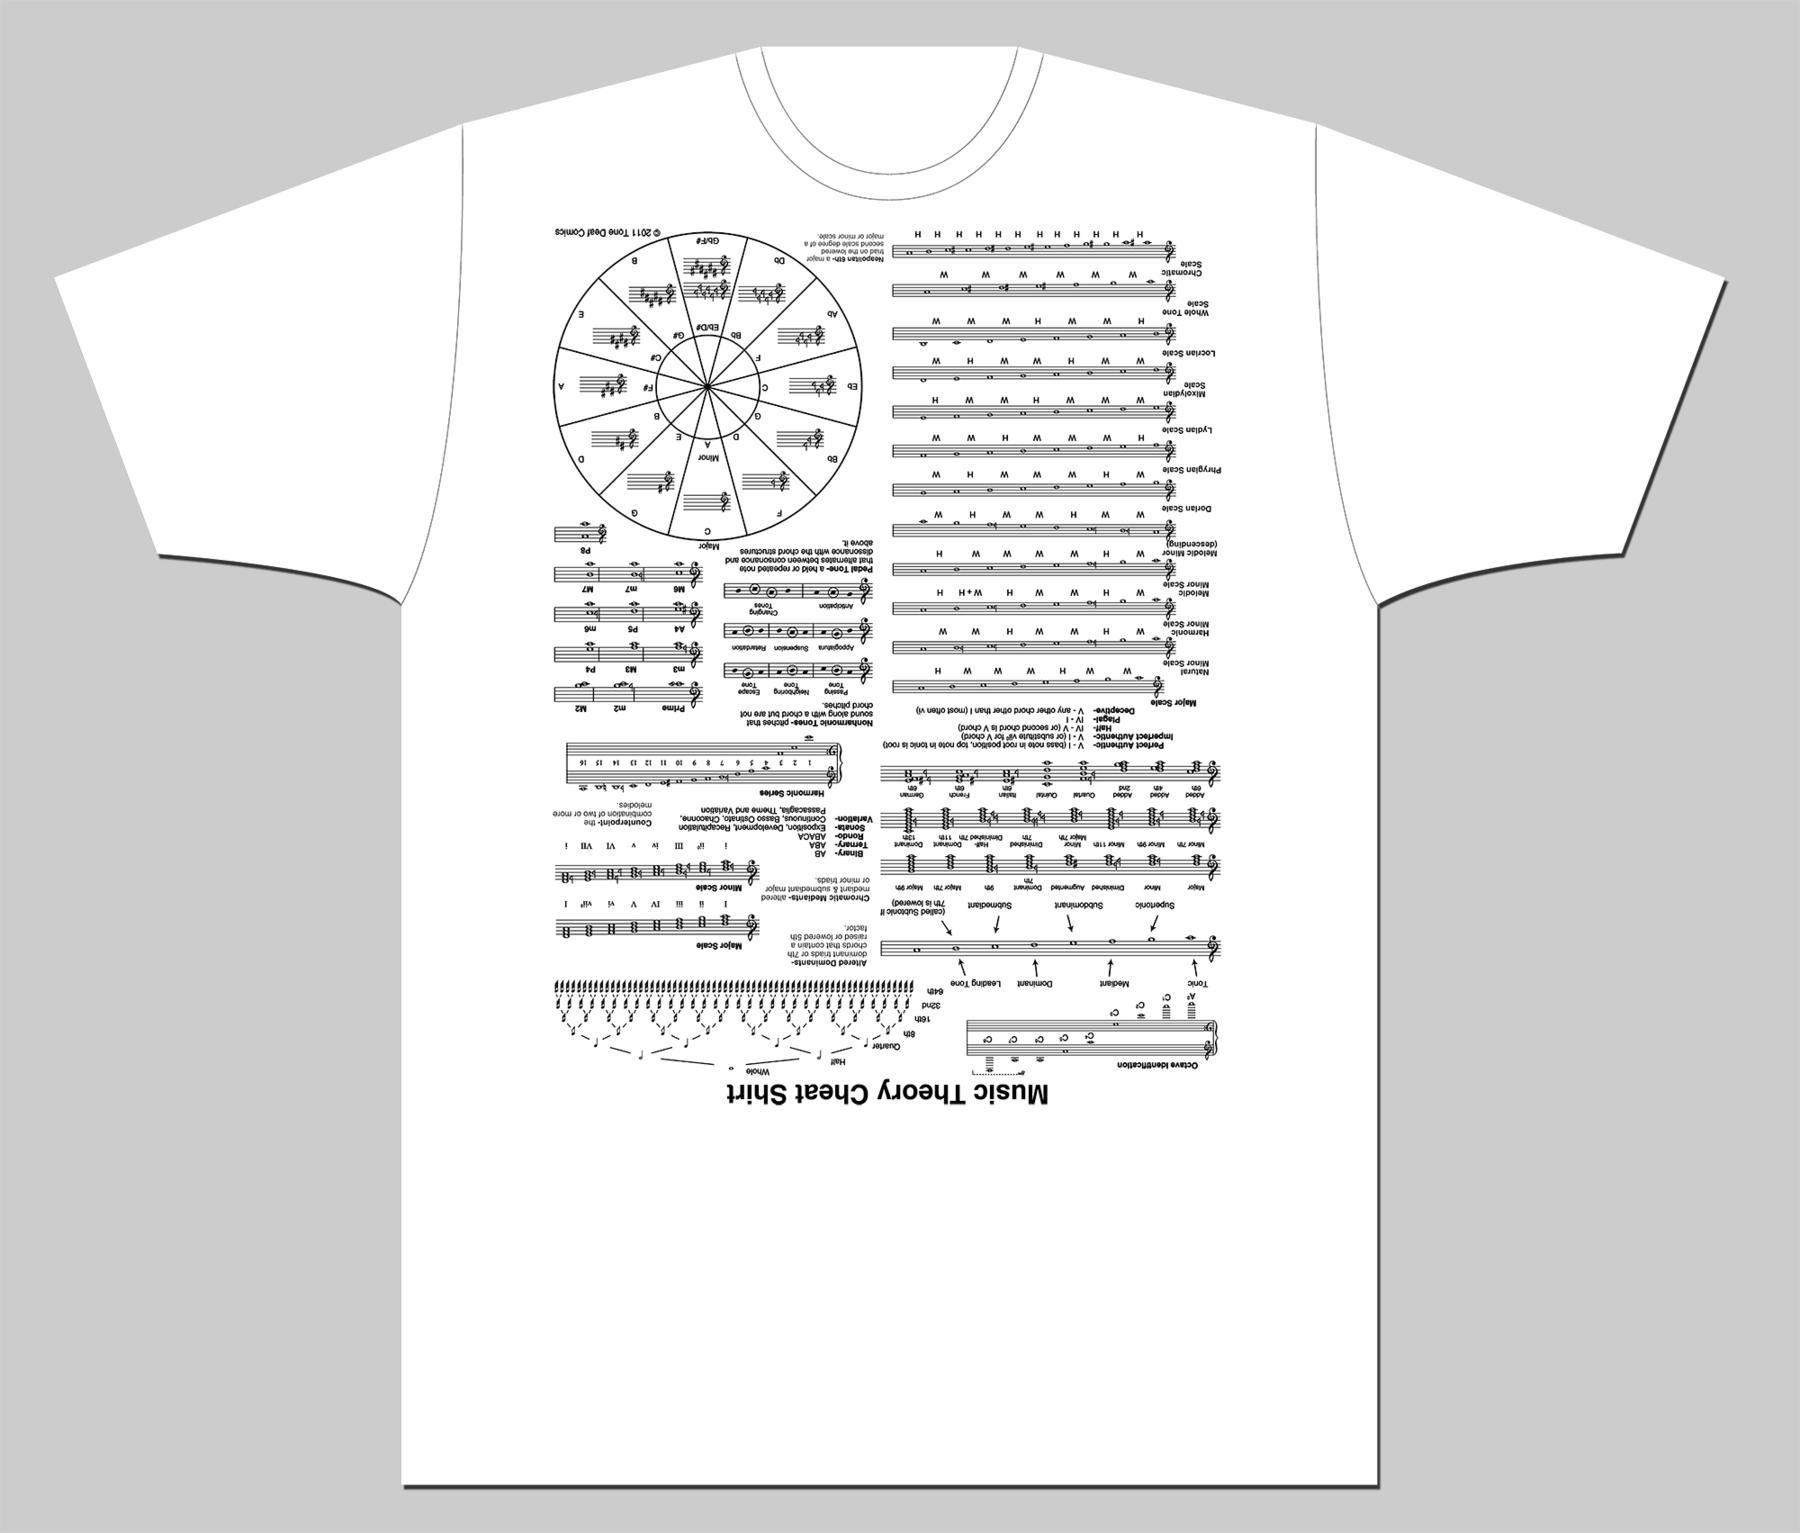 Music theory cheat shirt - Tone Deaf Comics